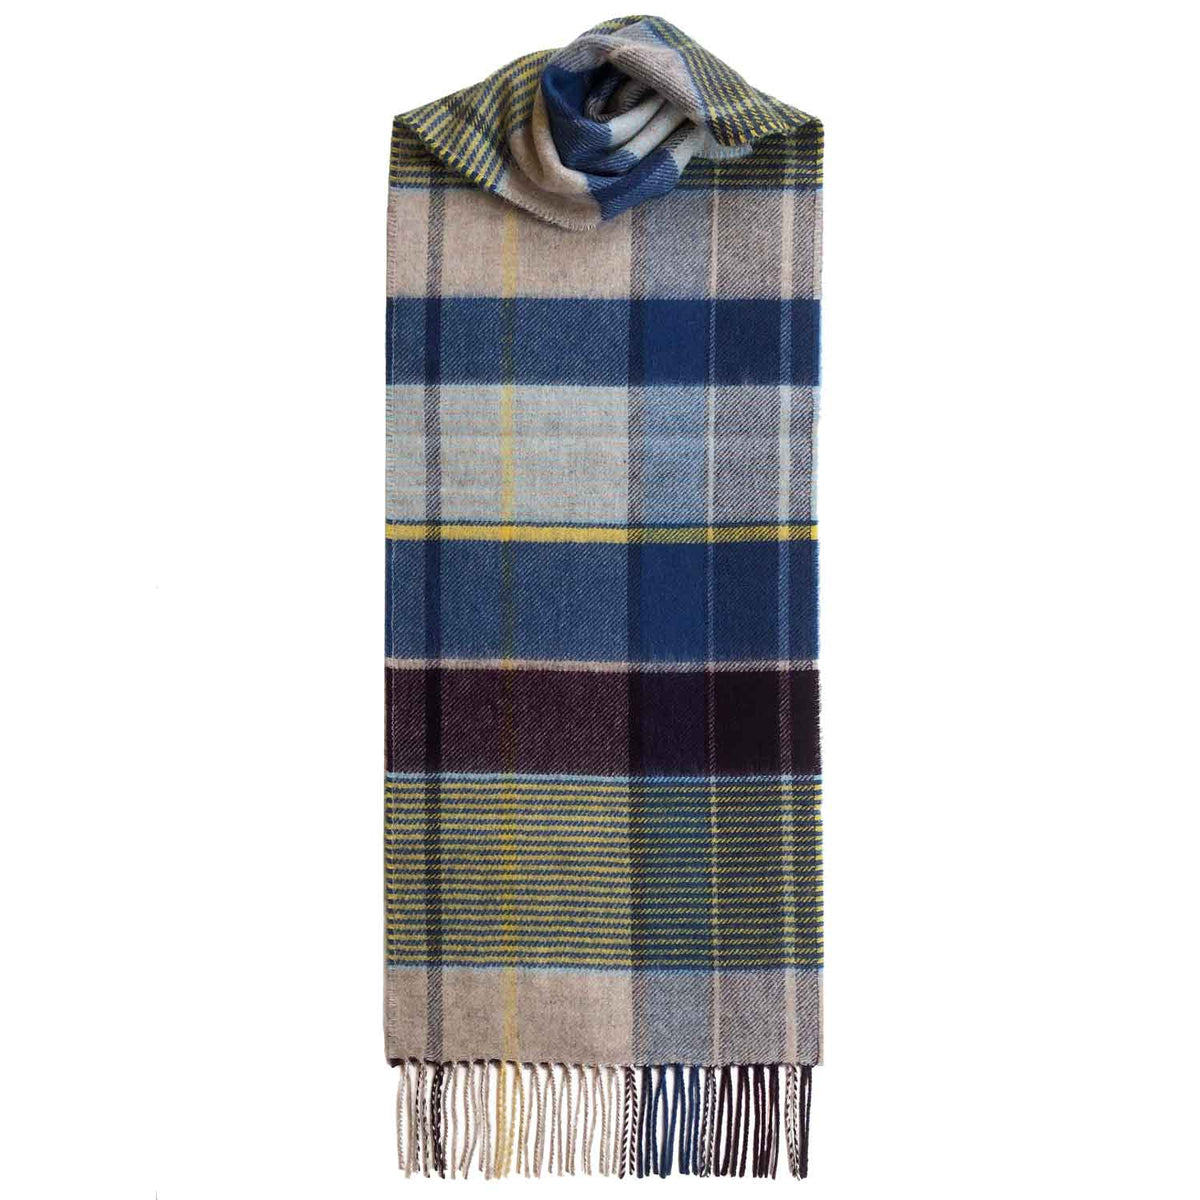 Lomond Cashmere | Beige Blue | Check Cashmere Scarf With Fringes | Made in Scotland | Shop at The Cashmere Choice | London